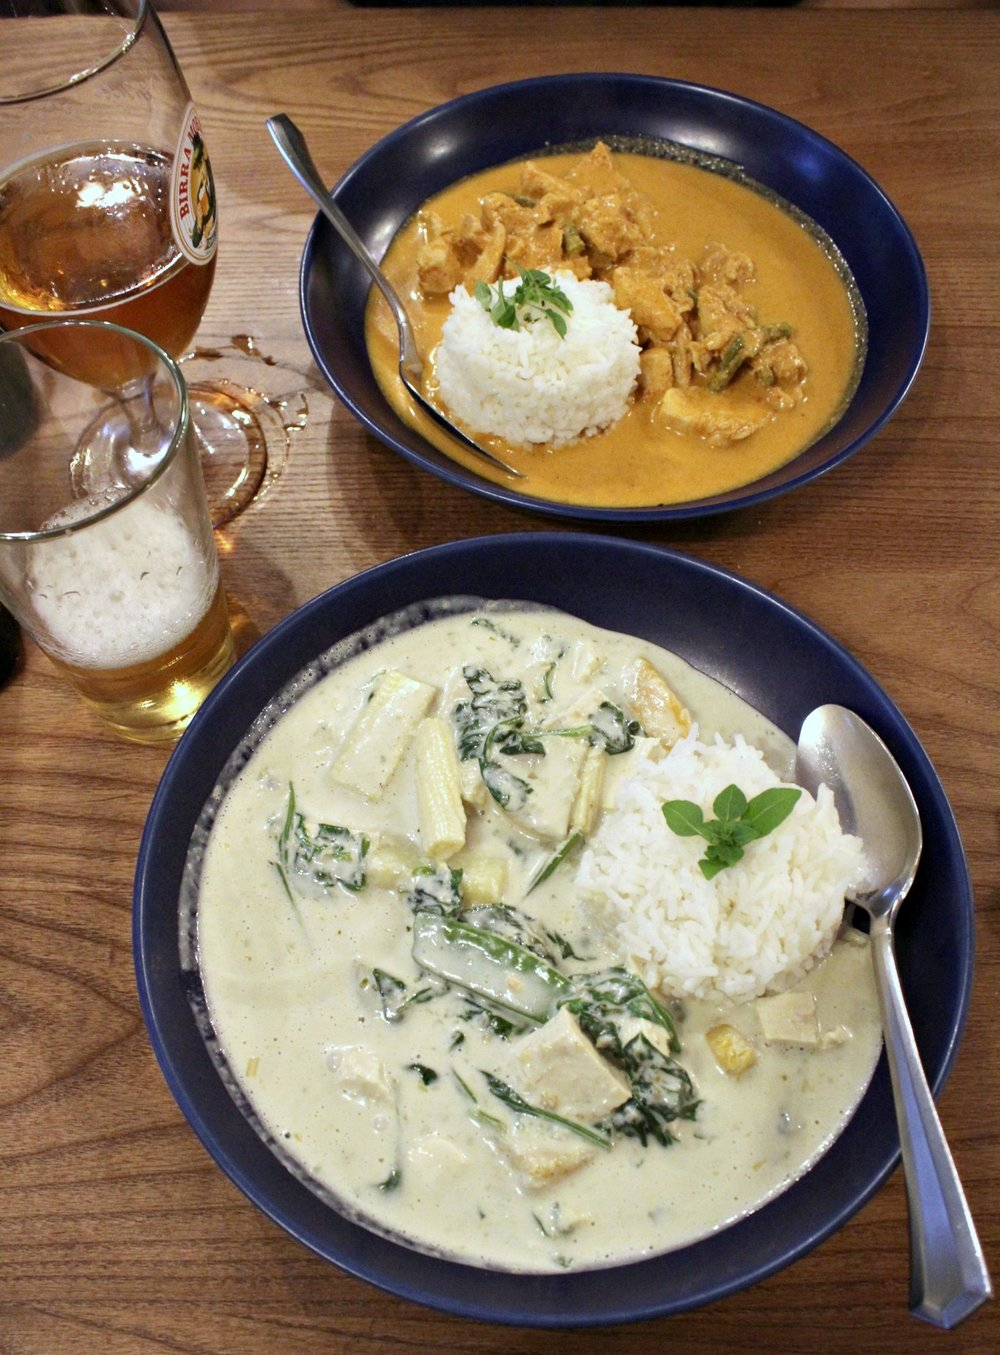 Thai Green Curry with Tofu for 11.40GBP